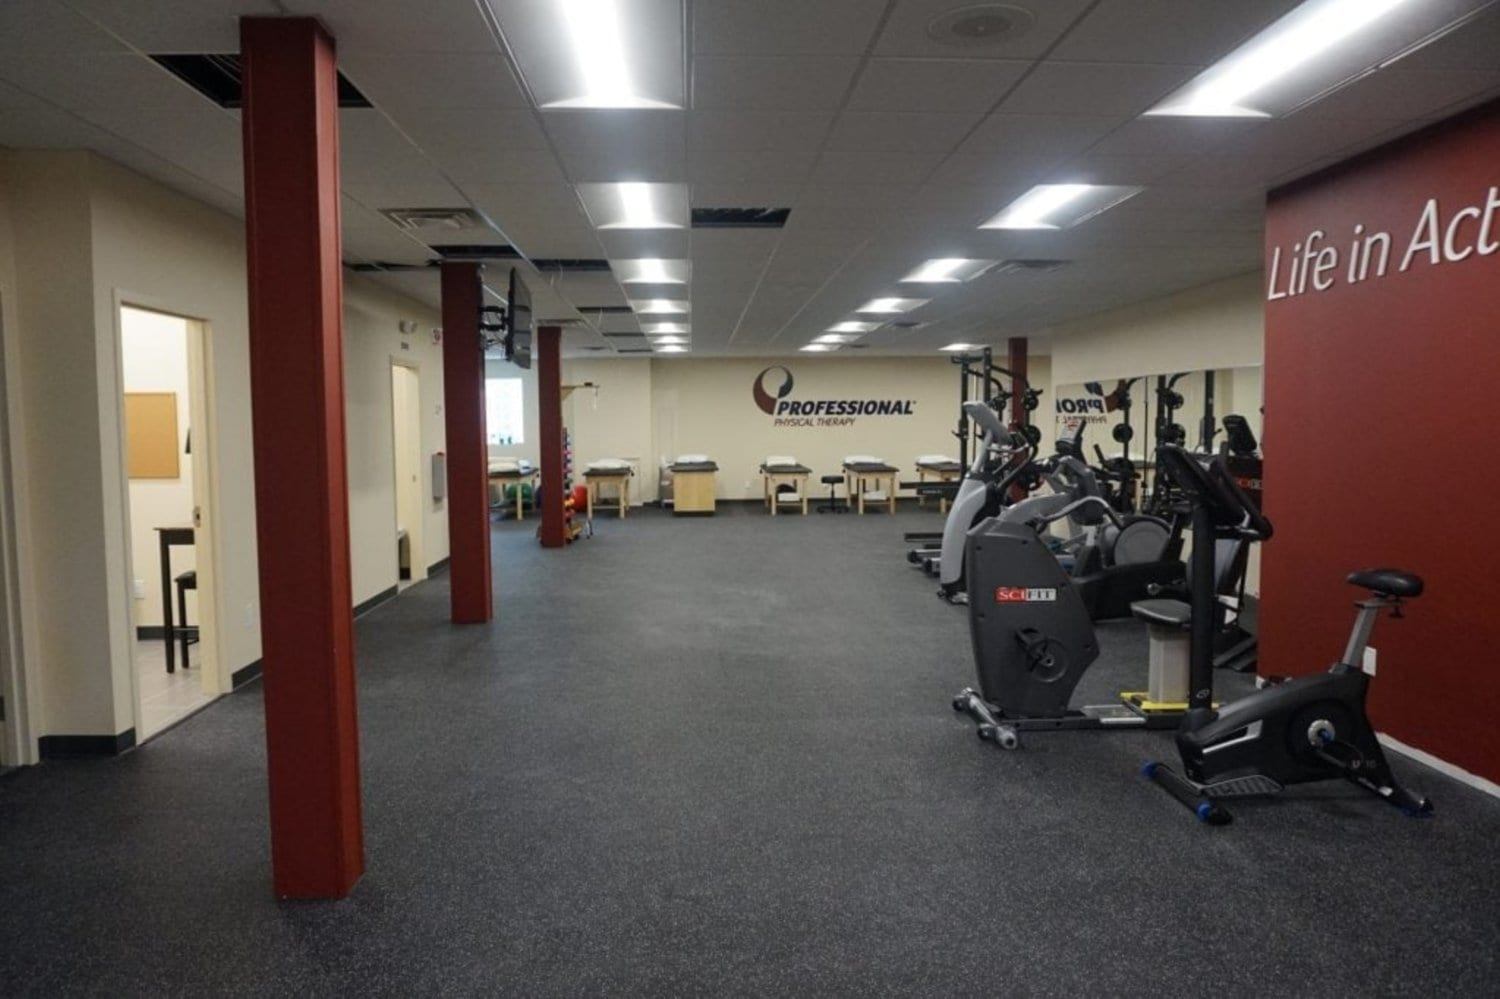 Here is an image of the interior of our facility. There is equipment used is physical therapy here in the training room at our clinic in Long Beach, New York.